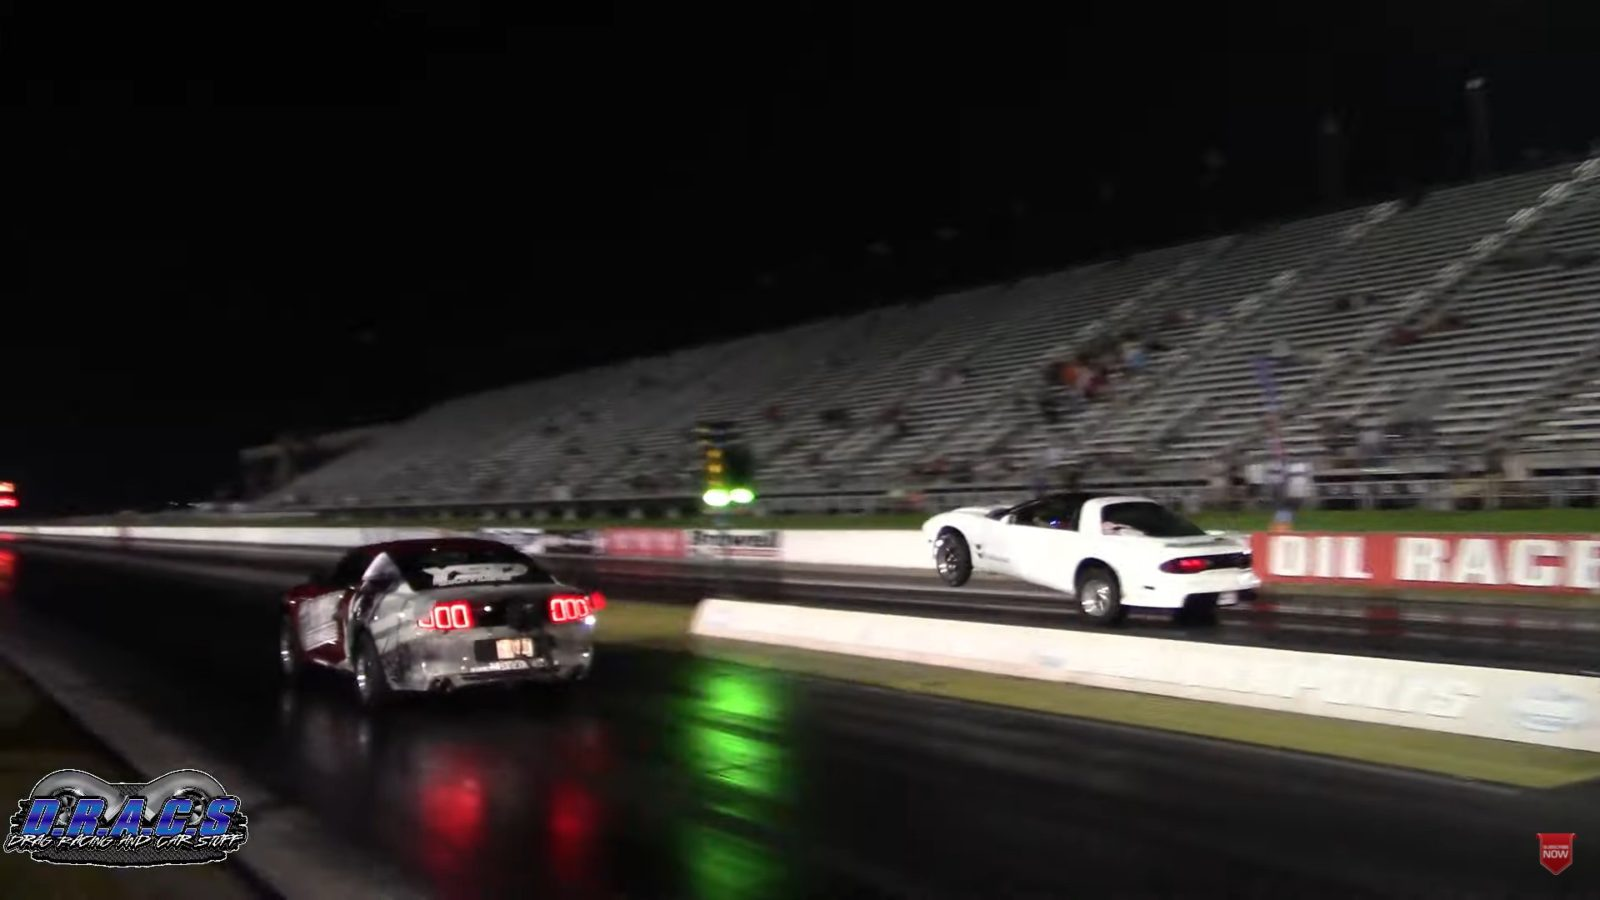 supercharged-ford-mustang-gt-drags-wheelie-pontiac-trans-am,-it's-amazingly-close